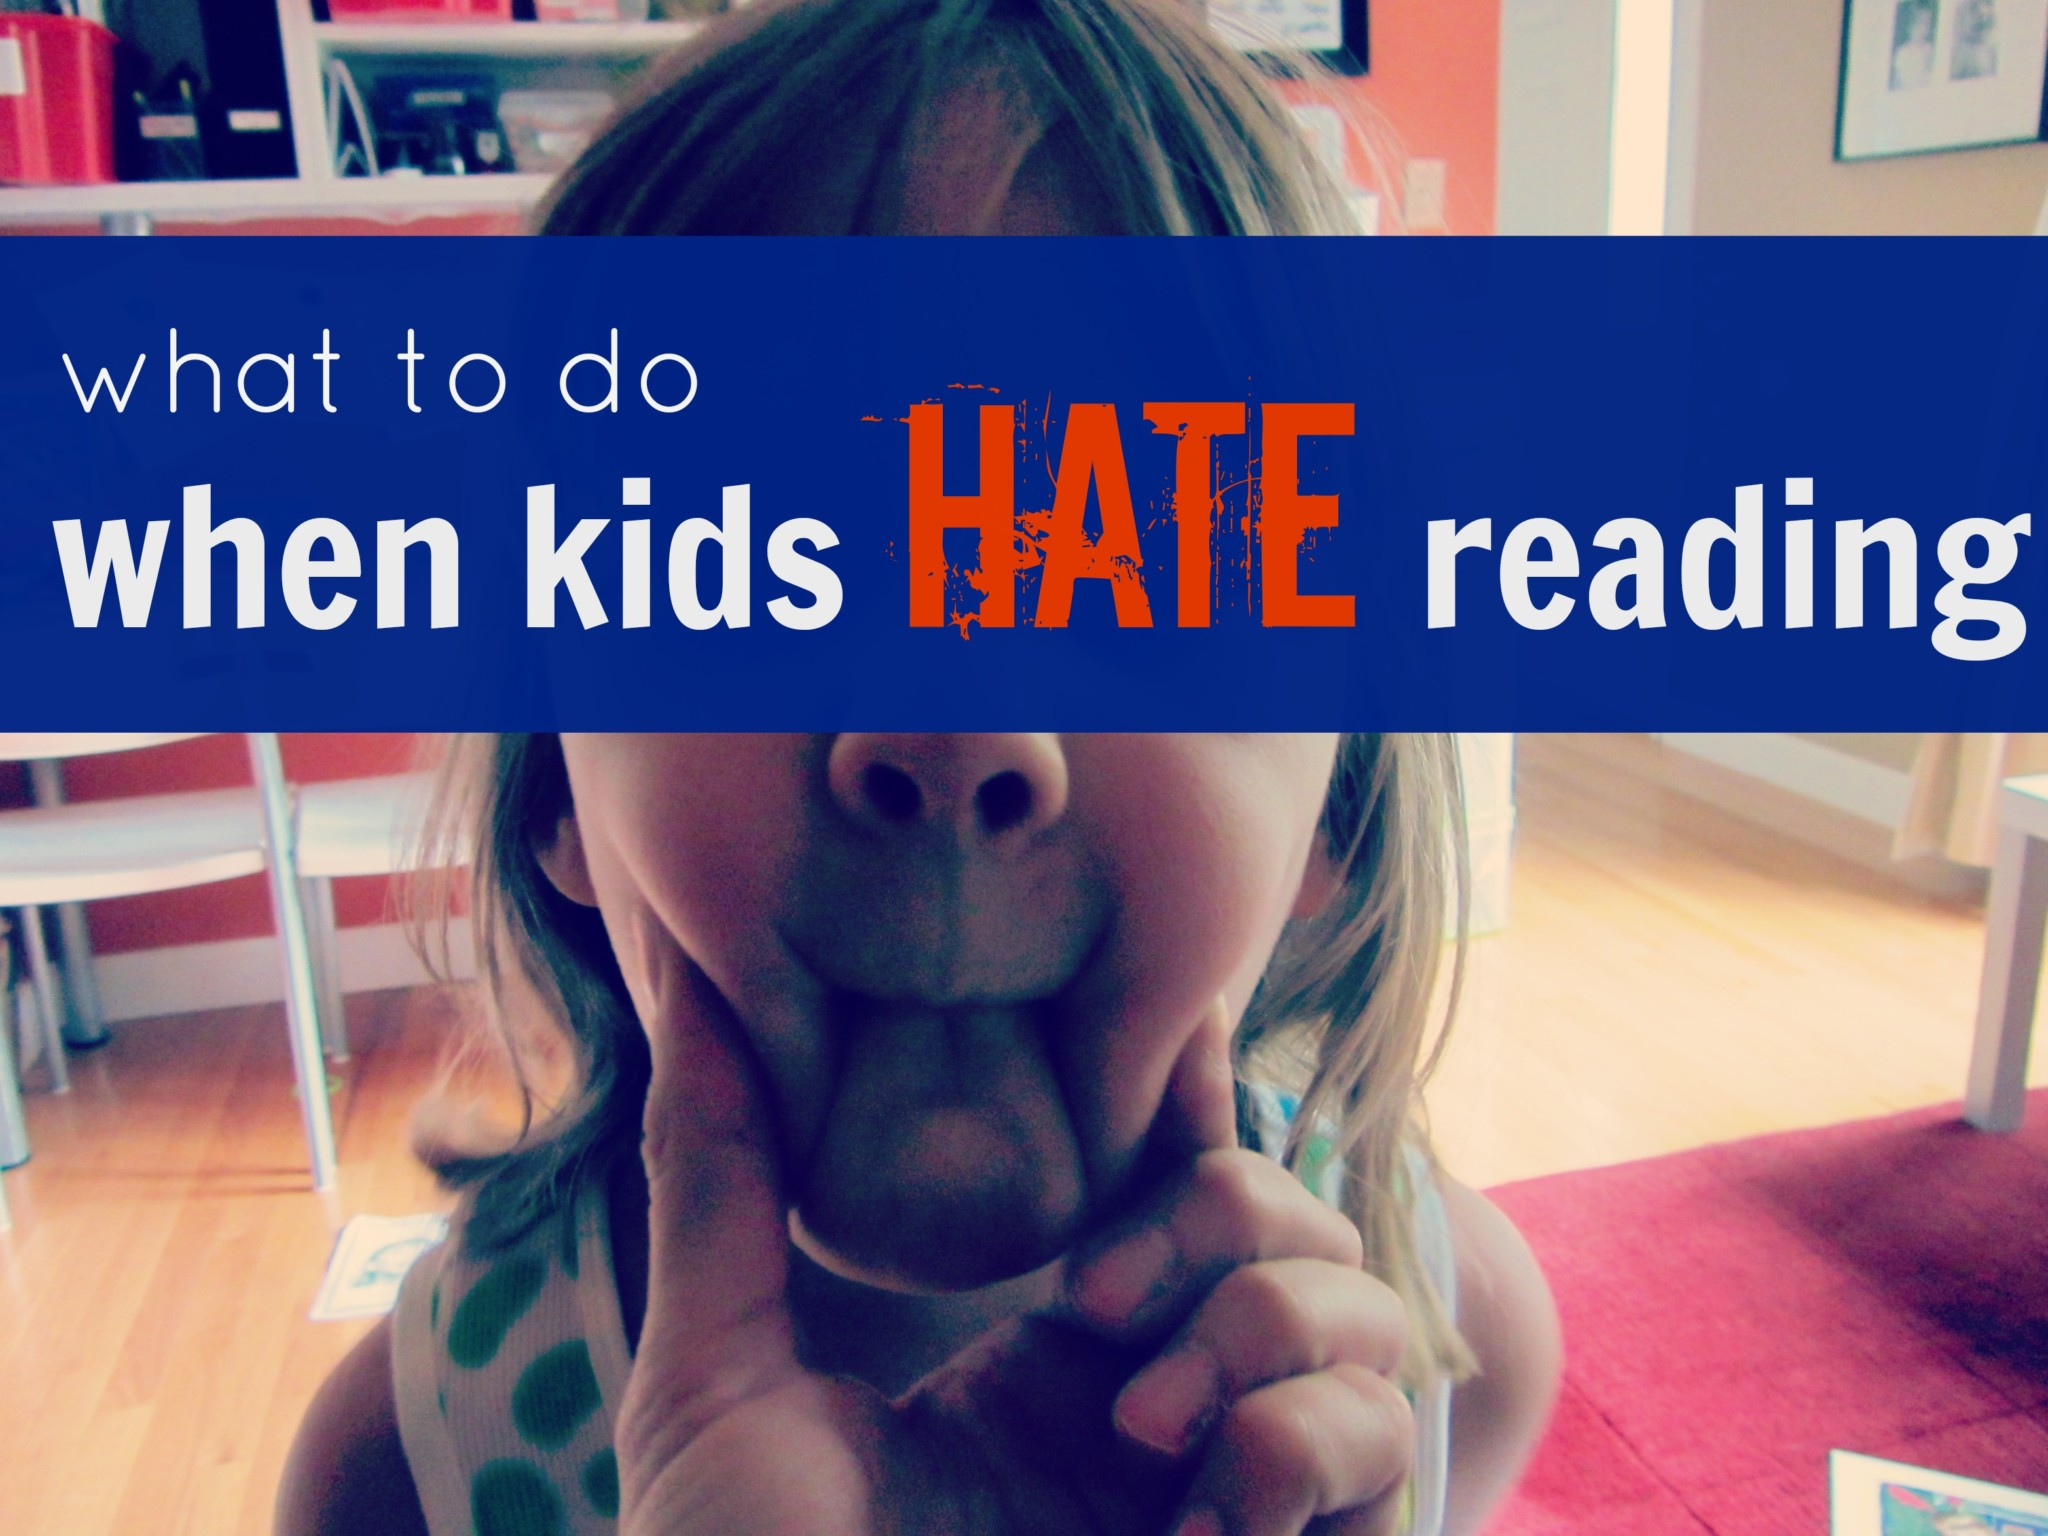 what to do when kids hate reading